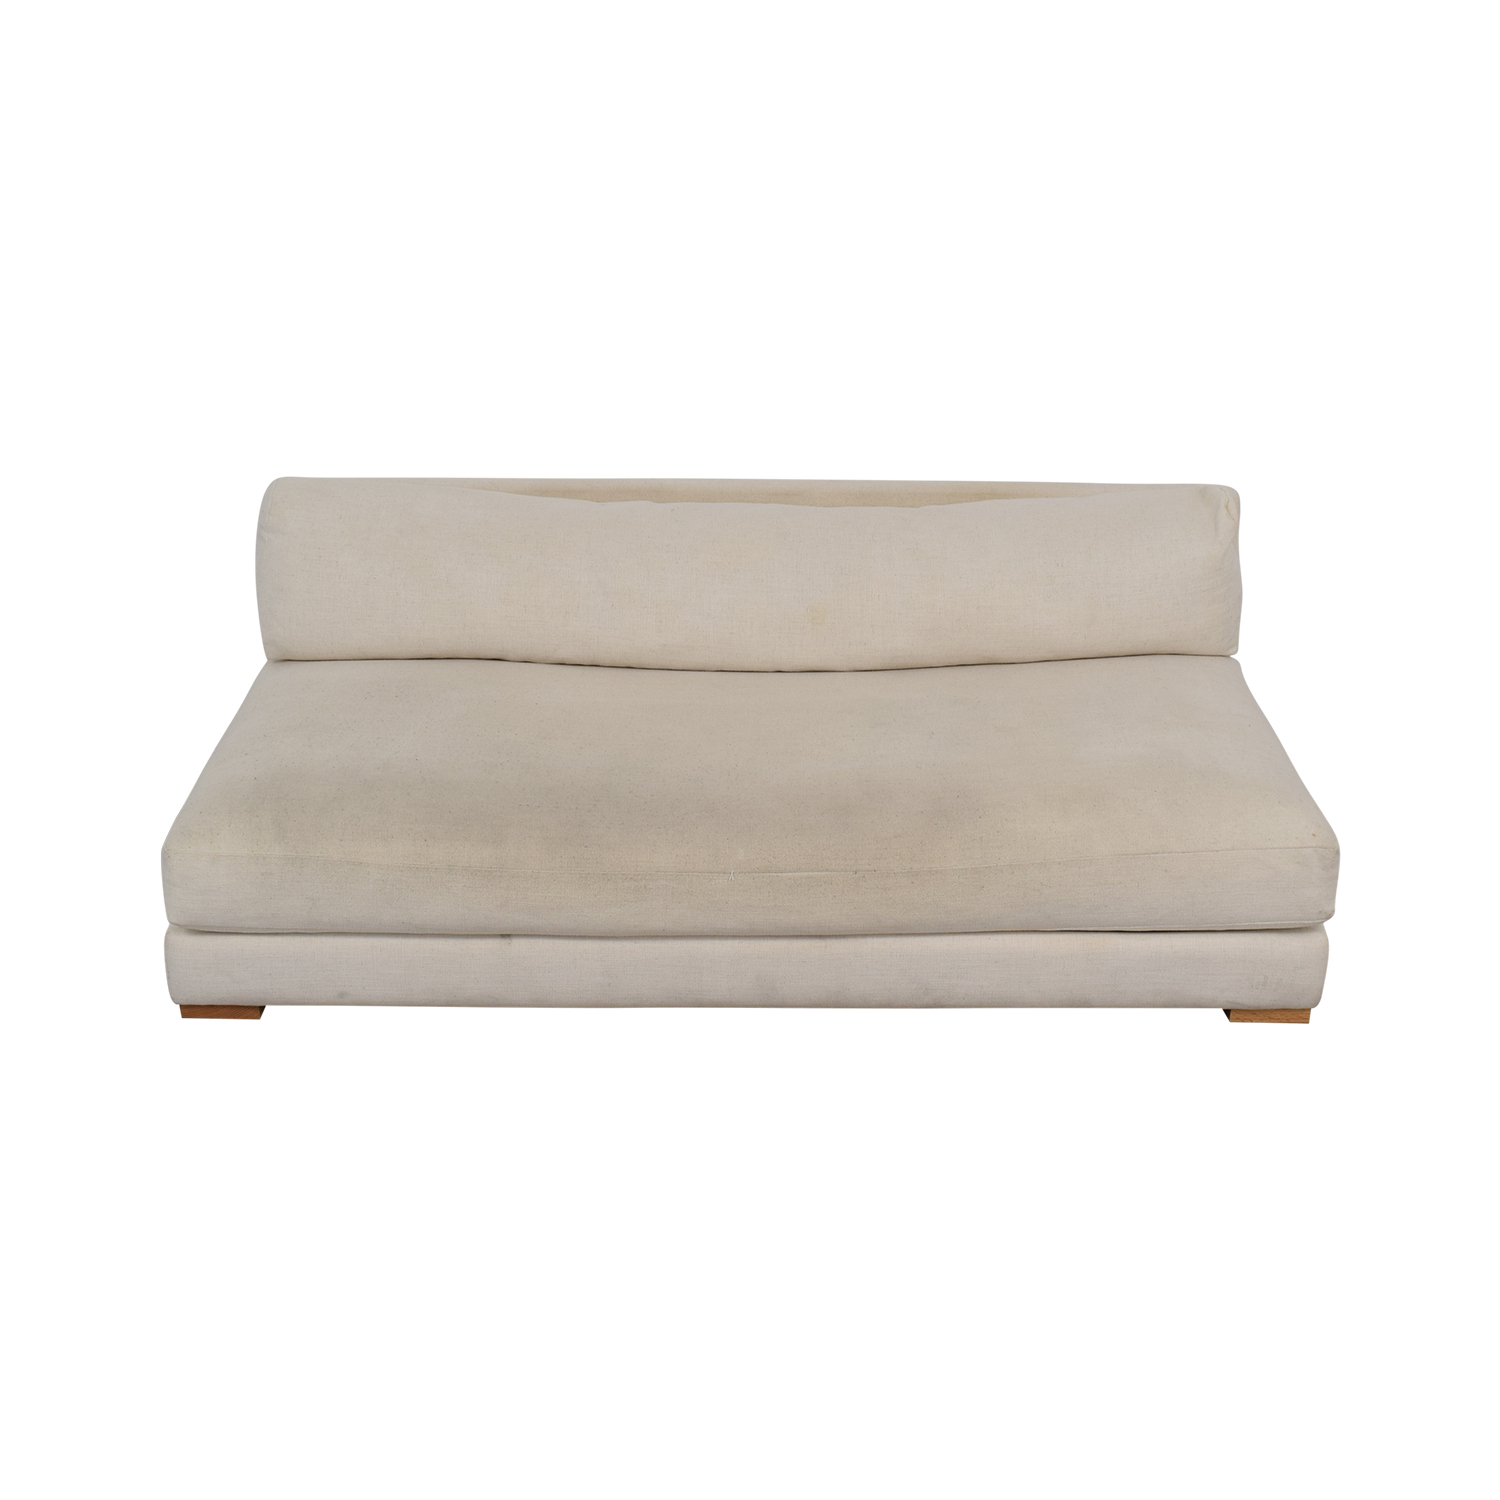 CB2 CB2 Piazza White Single Cushion Armless Sofa price